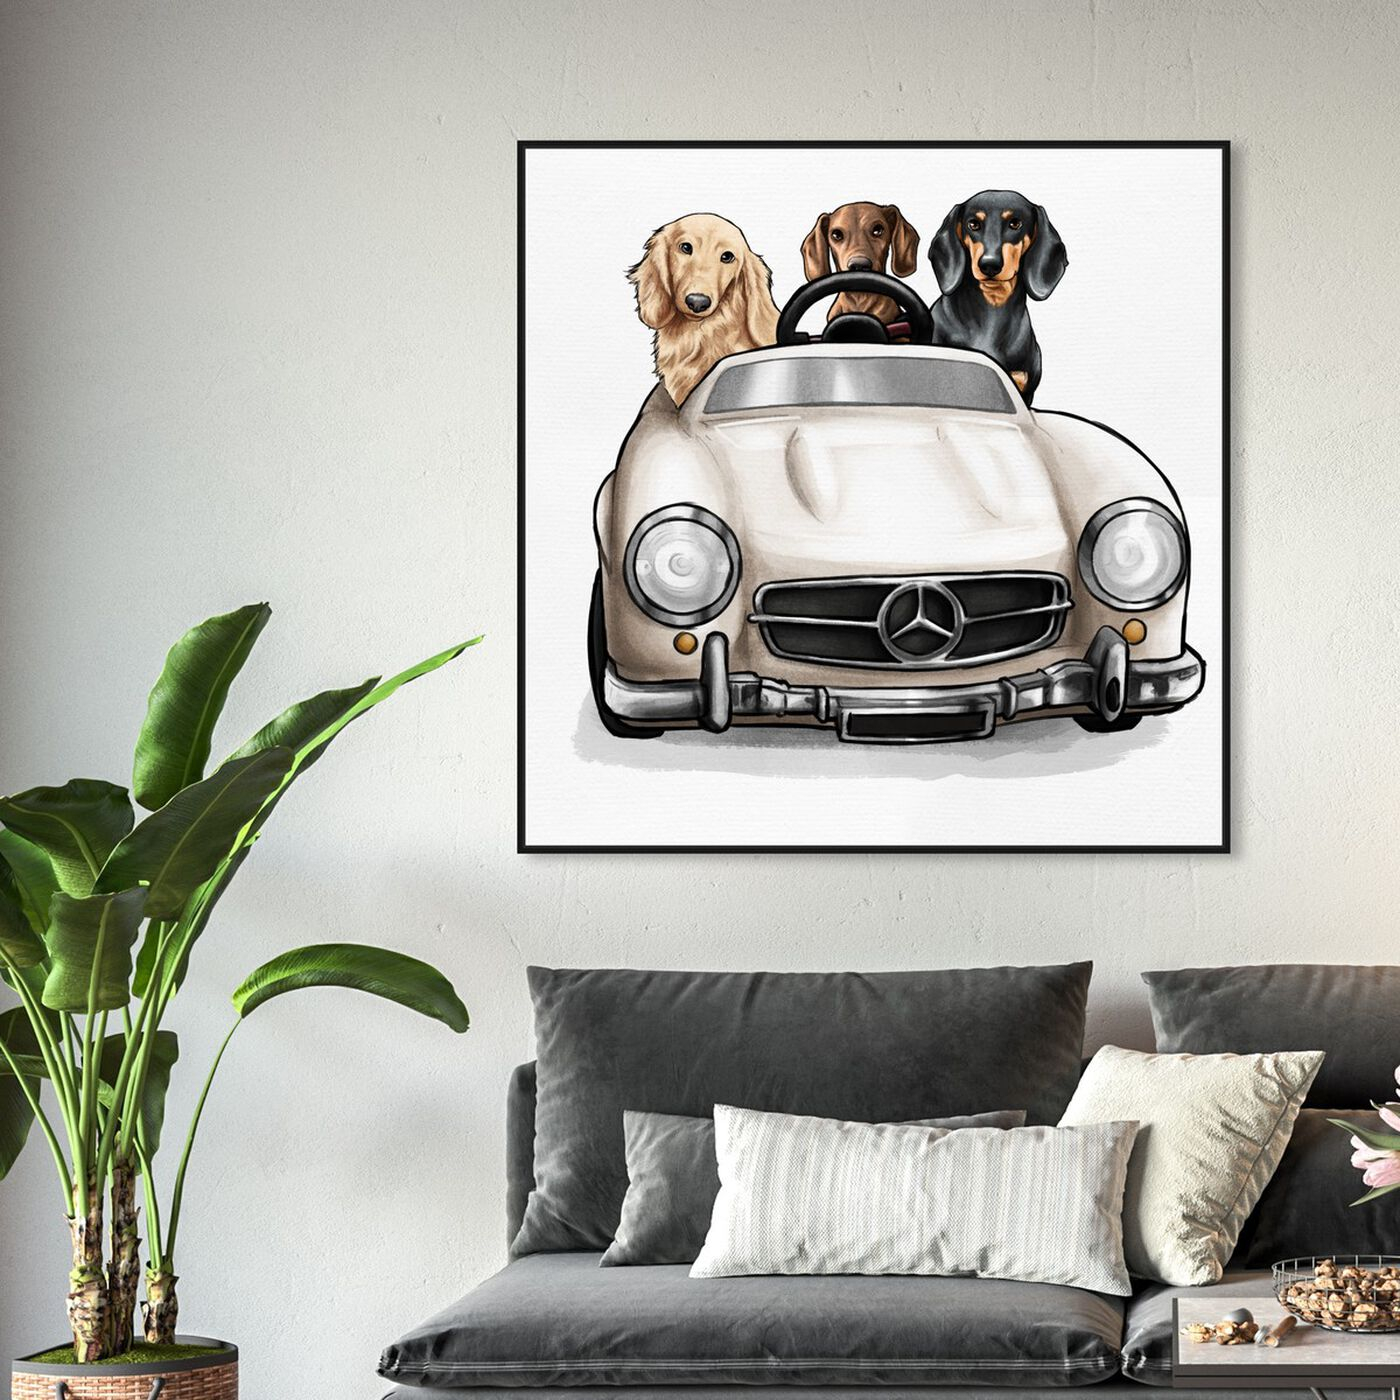 Hanging view of Strolling in Style dachshunds featuring animals and dogs and puppies art.